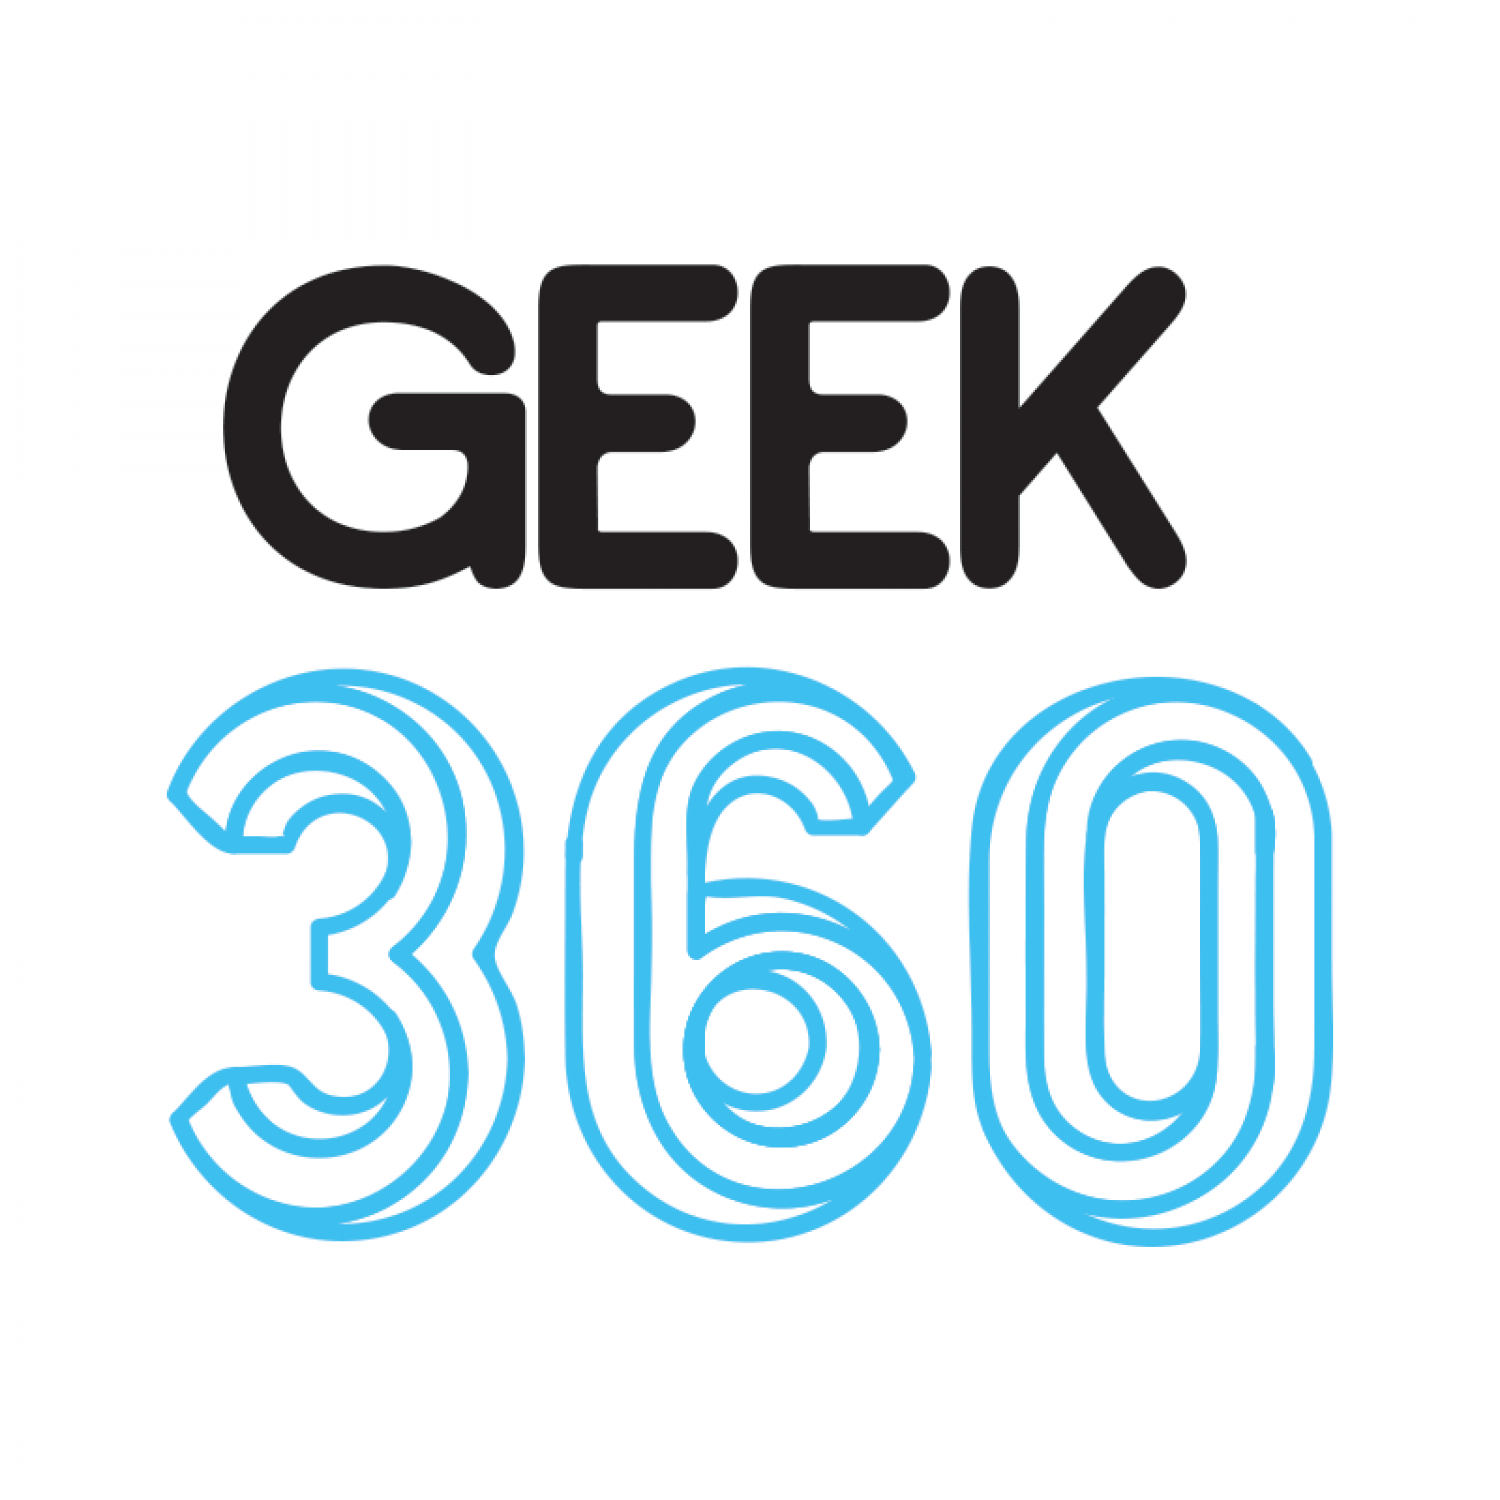 Novo Logotipo do Geek360 Infographic